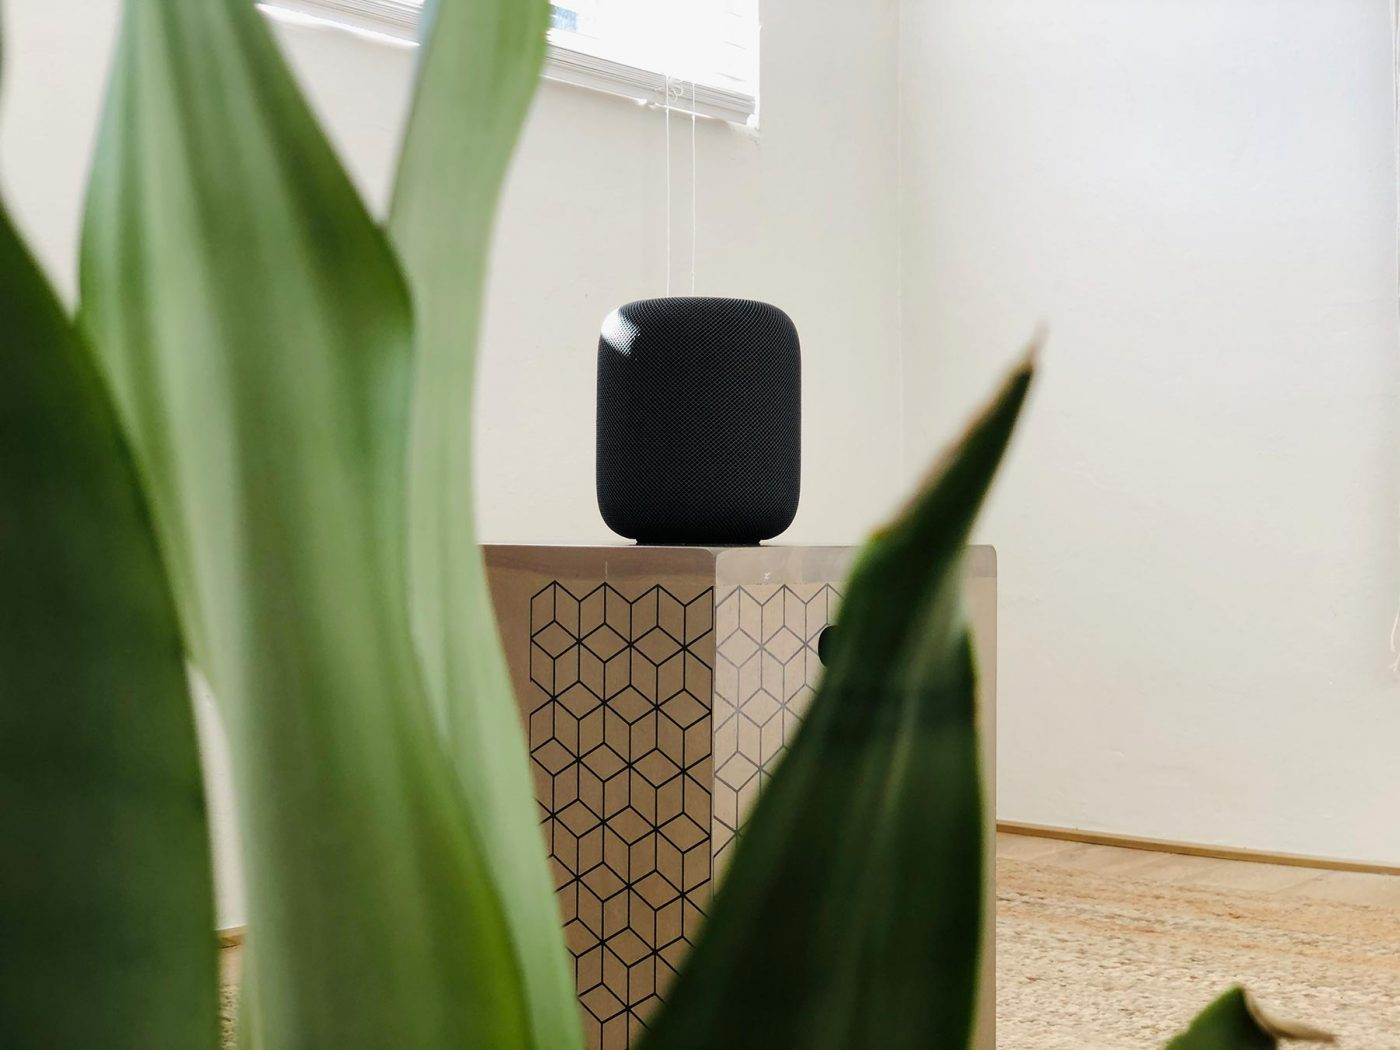 Space Grey HomePod in Home